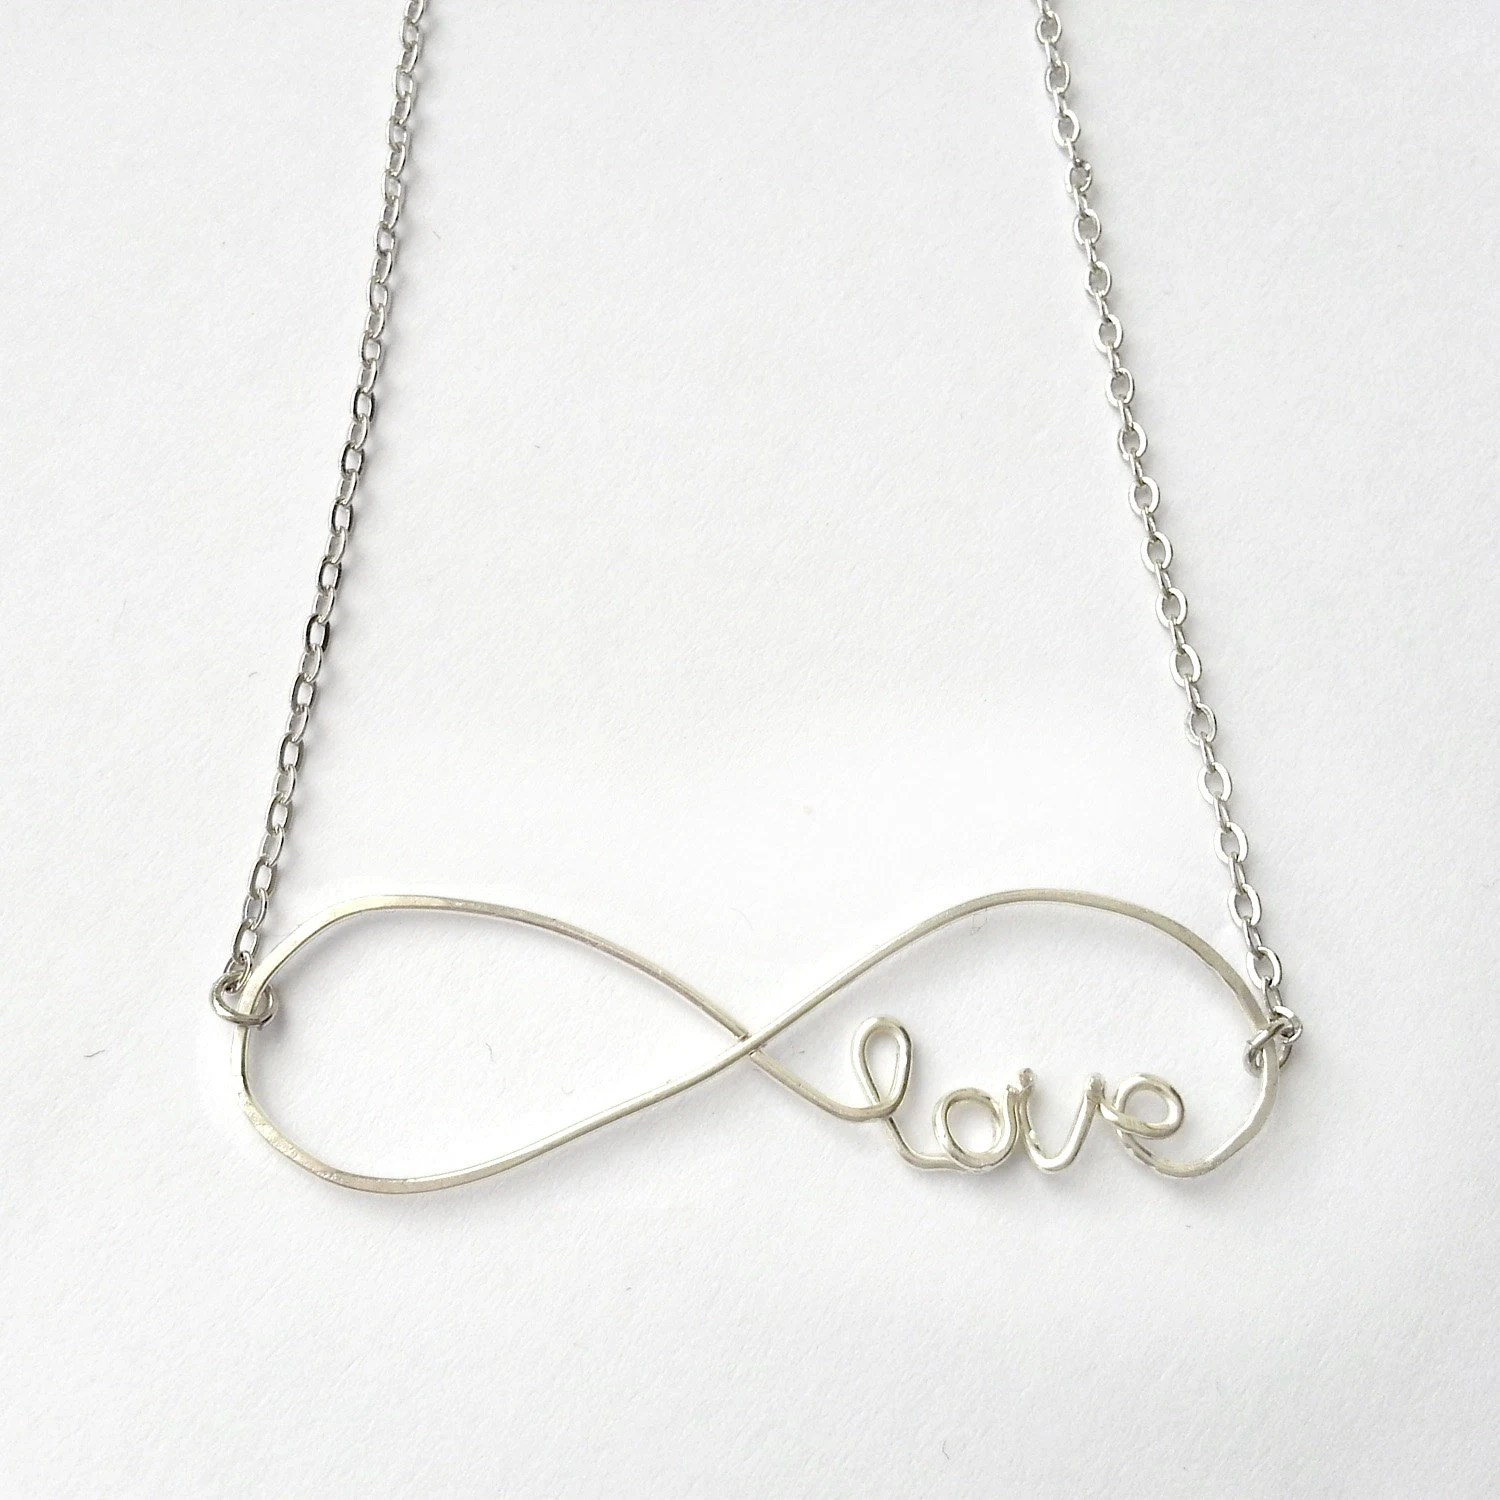 Infinity Love Necklace - Infinite Love Necklace, Cursive Love Necklace, Infinity Jewelry  - 'Forever' - FioreJewellery